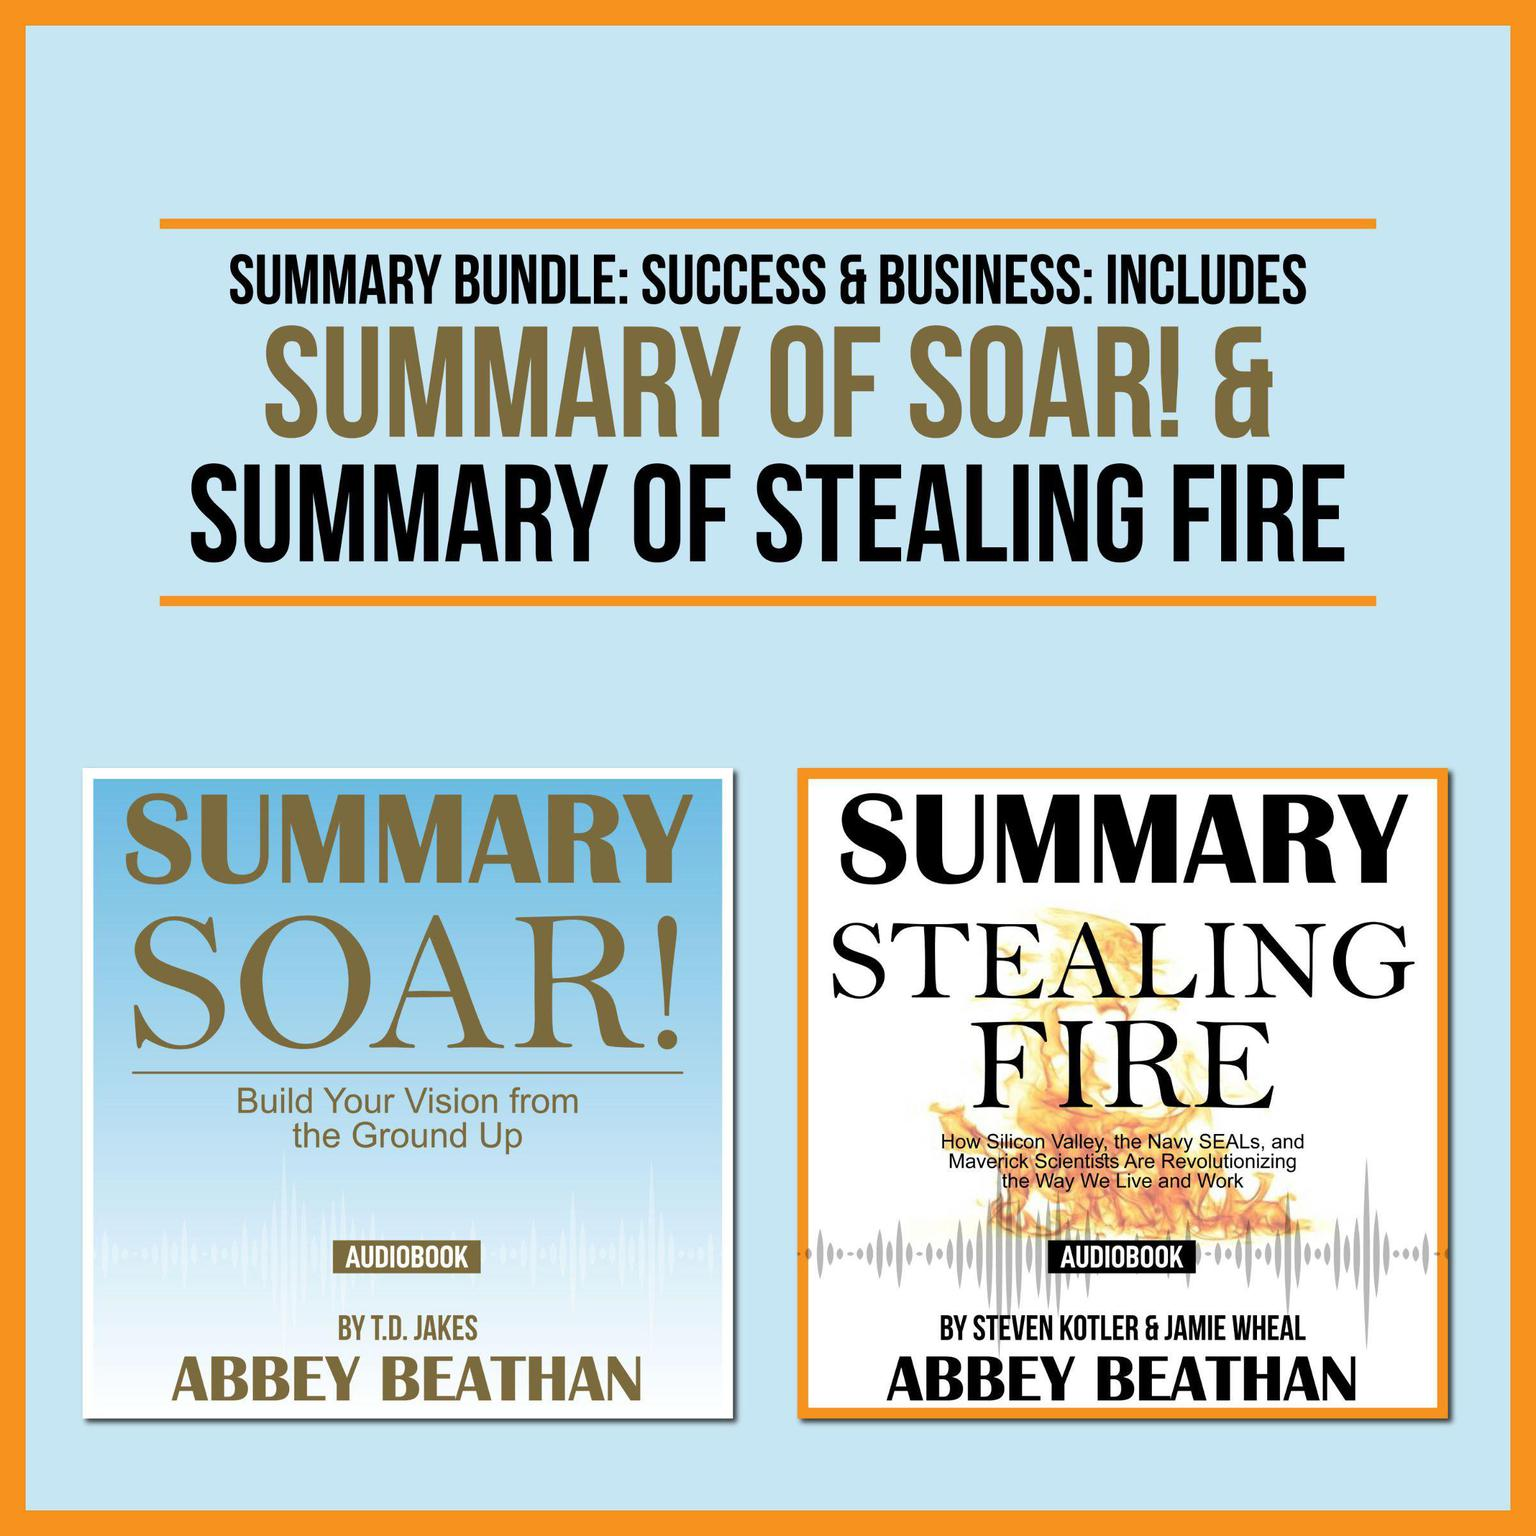 Summary Bundle: Success & Business: Includes Summary of Soar! & Summary of Stealing Fire Audiobook, by Abbey Beathan